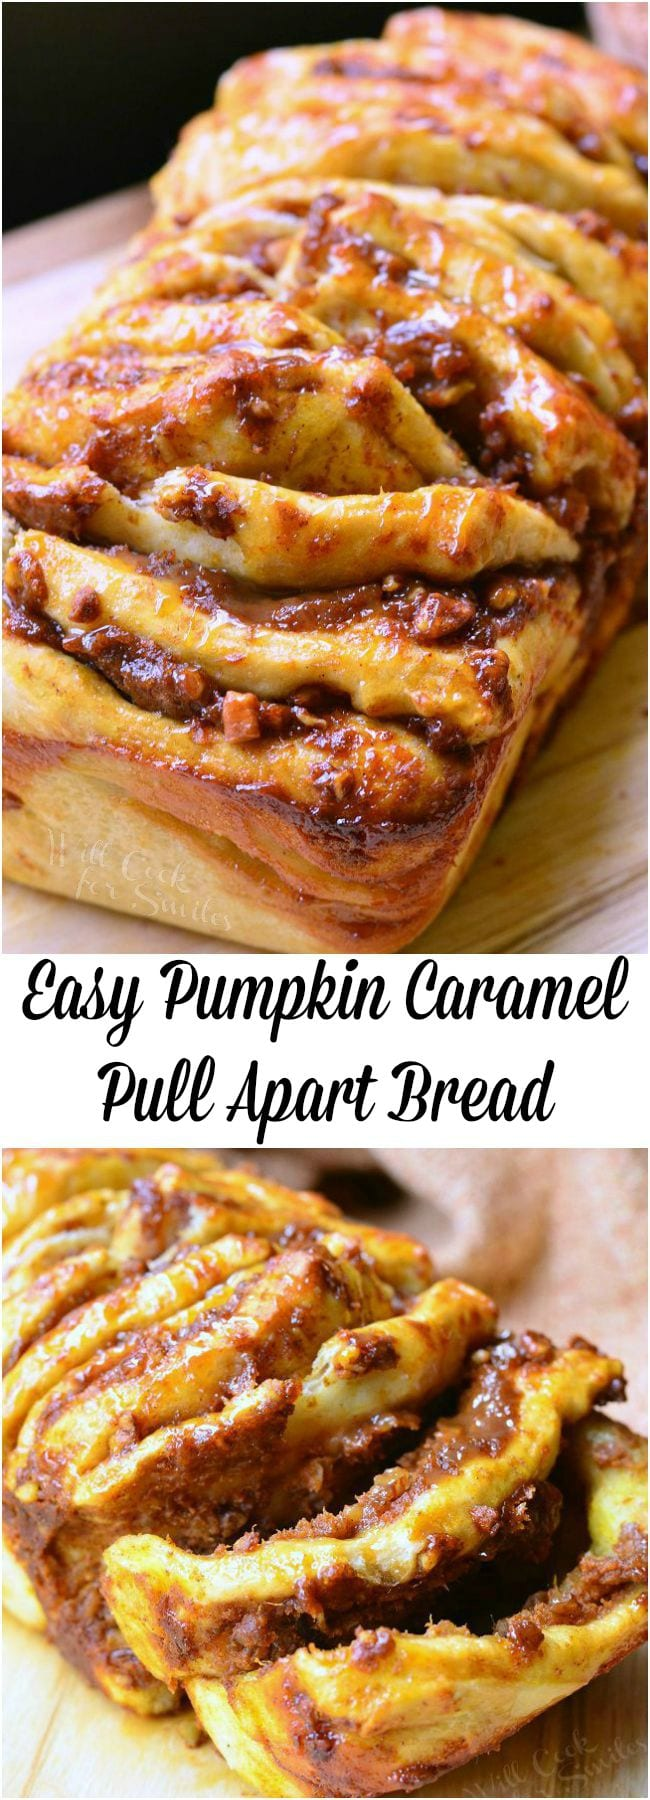 Easy Pumpkin Caramel Pull Apart Bread and The Pumpkin Lovers Cookbook ...